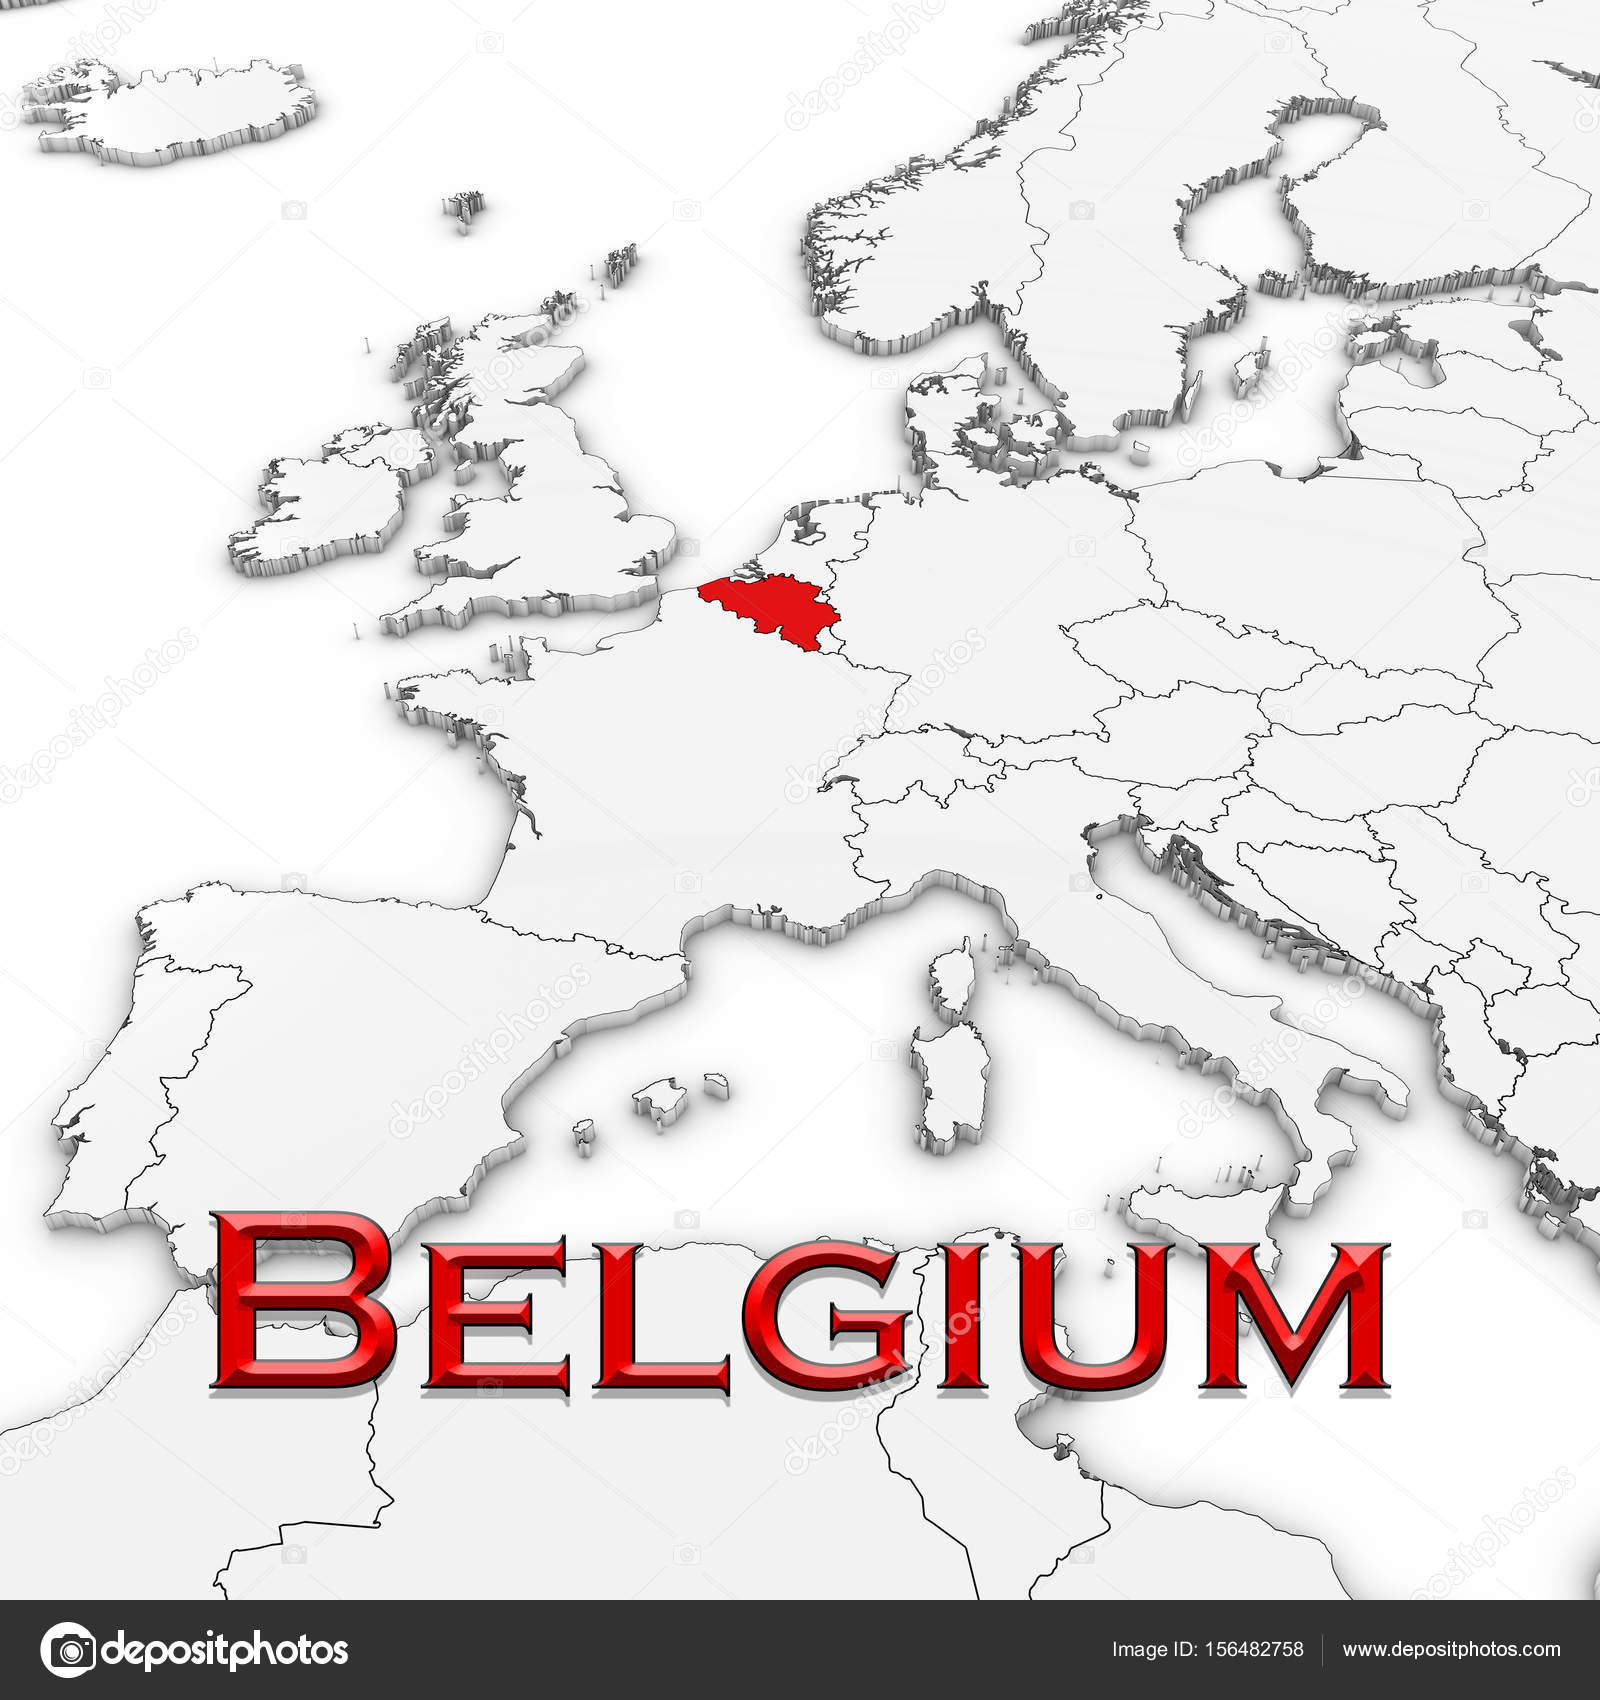 3d map of belgium with country name highlighted red on white 3d map of belgium with country name highlighted red on white background 3d illustration photo by fredex gumiabroncs Image collections